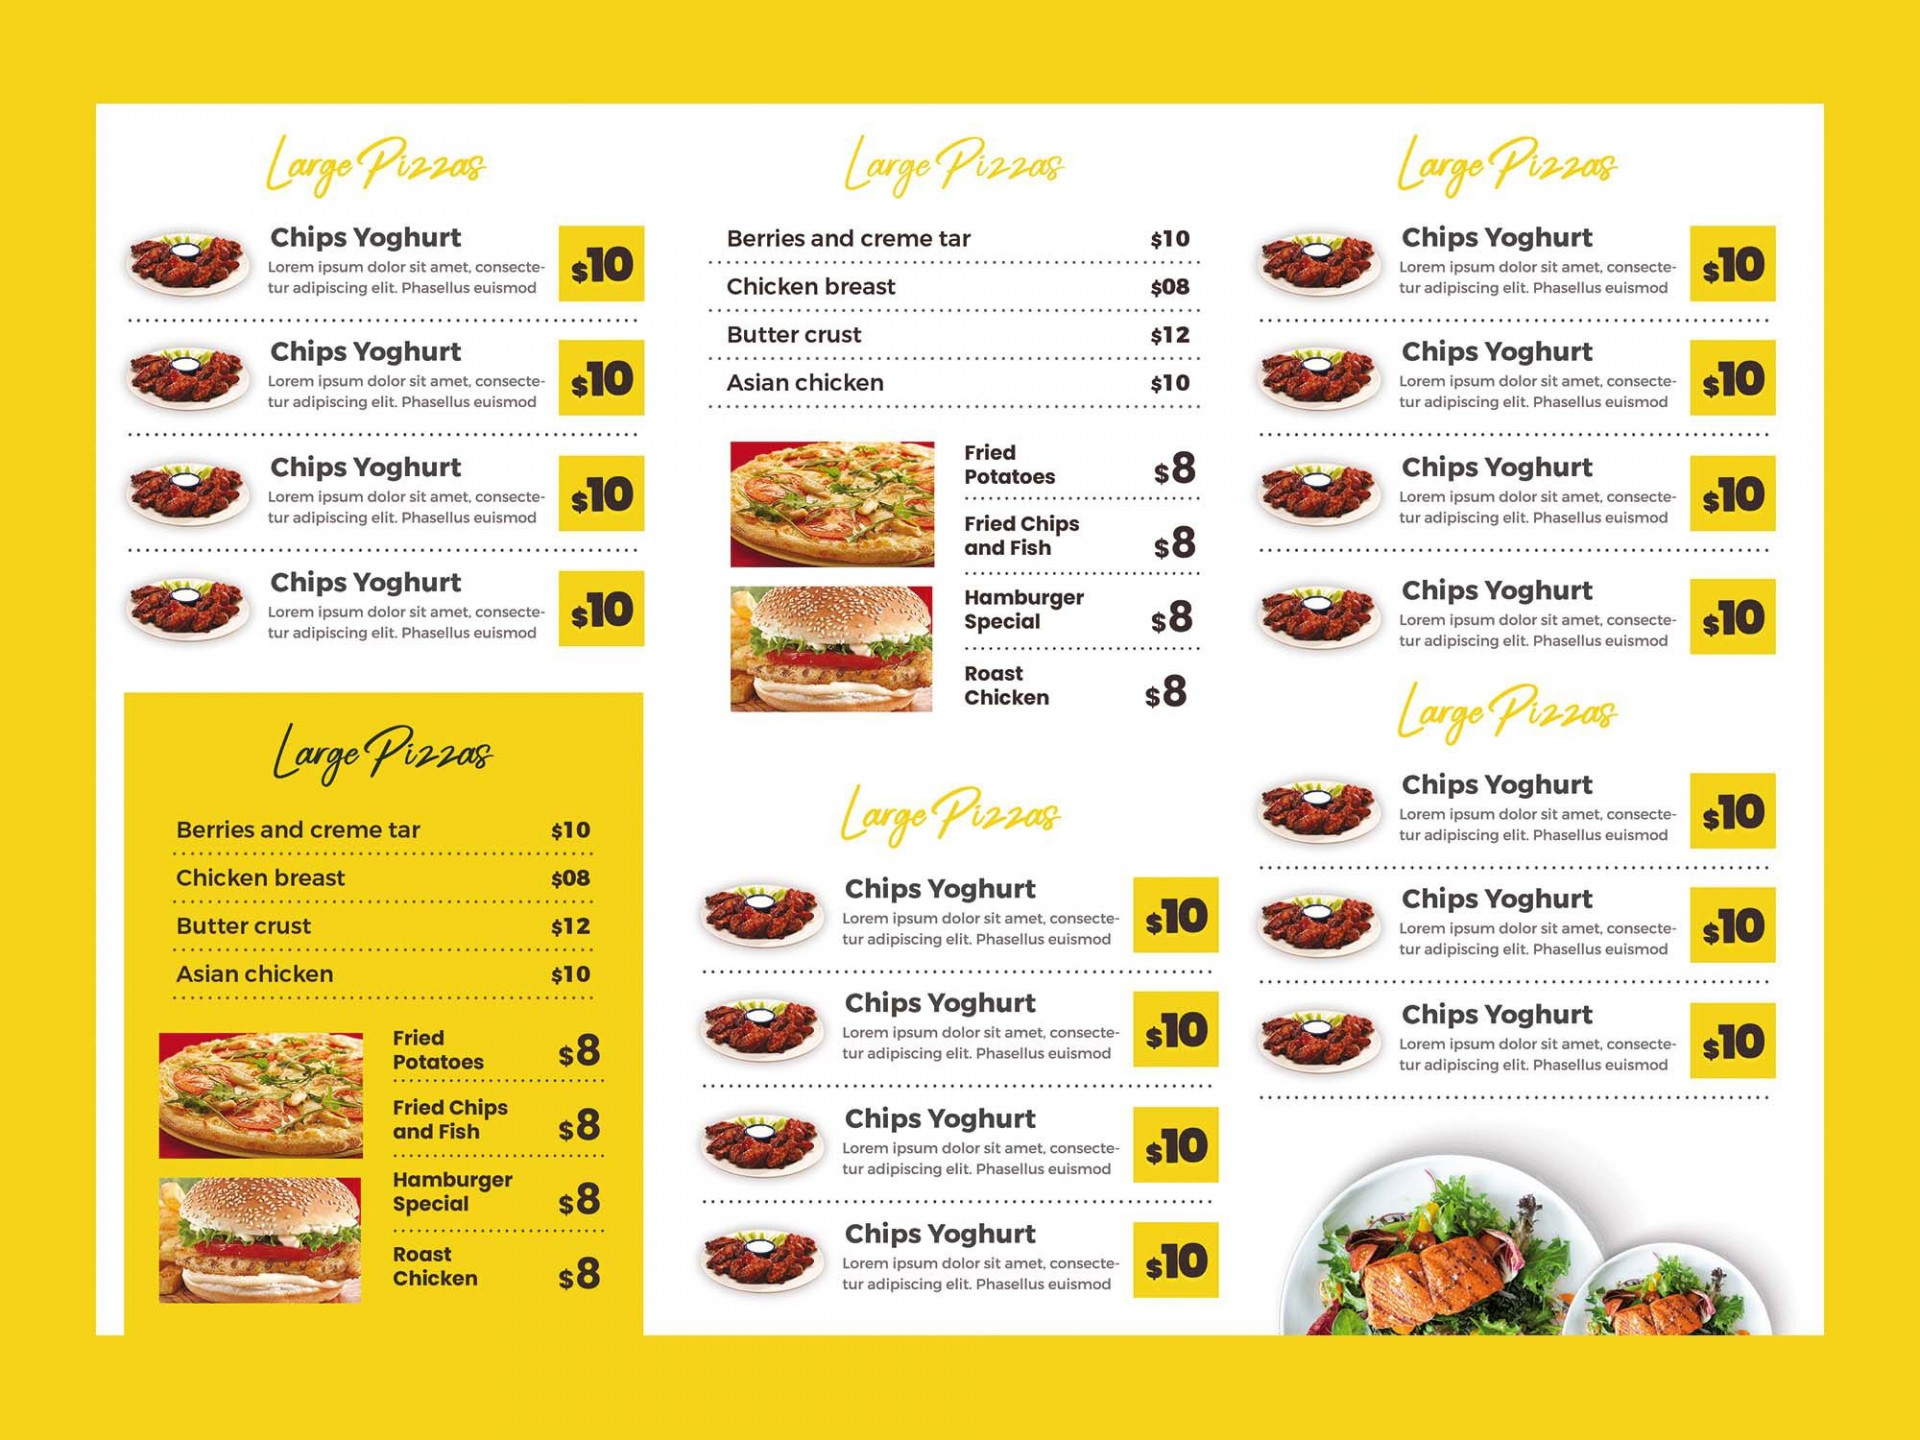 008 Fascinating Tri Fold Menu Template Free Concept  Tri-fold Restaurant Food Psd Wedding Brochure Cafe Download1920